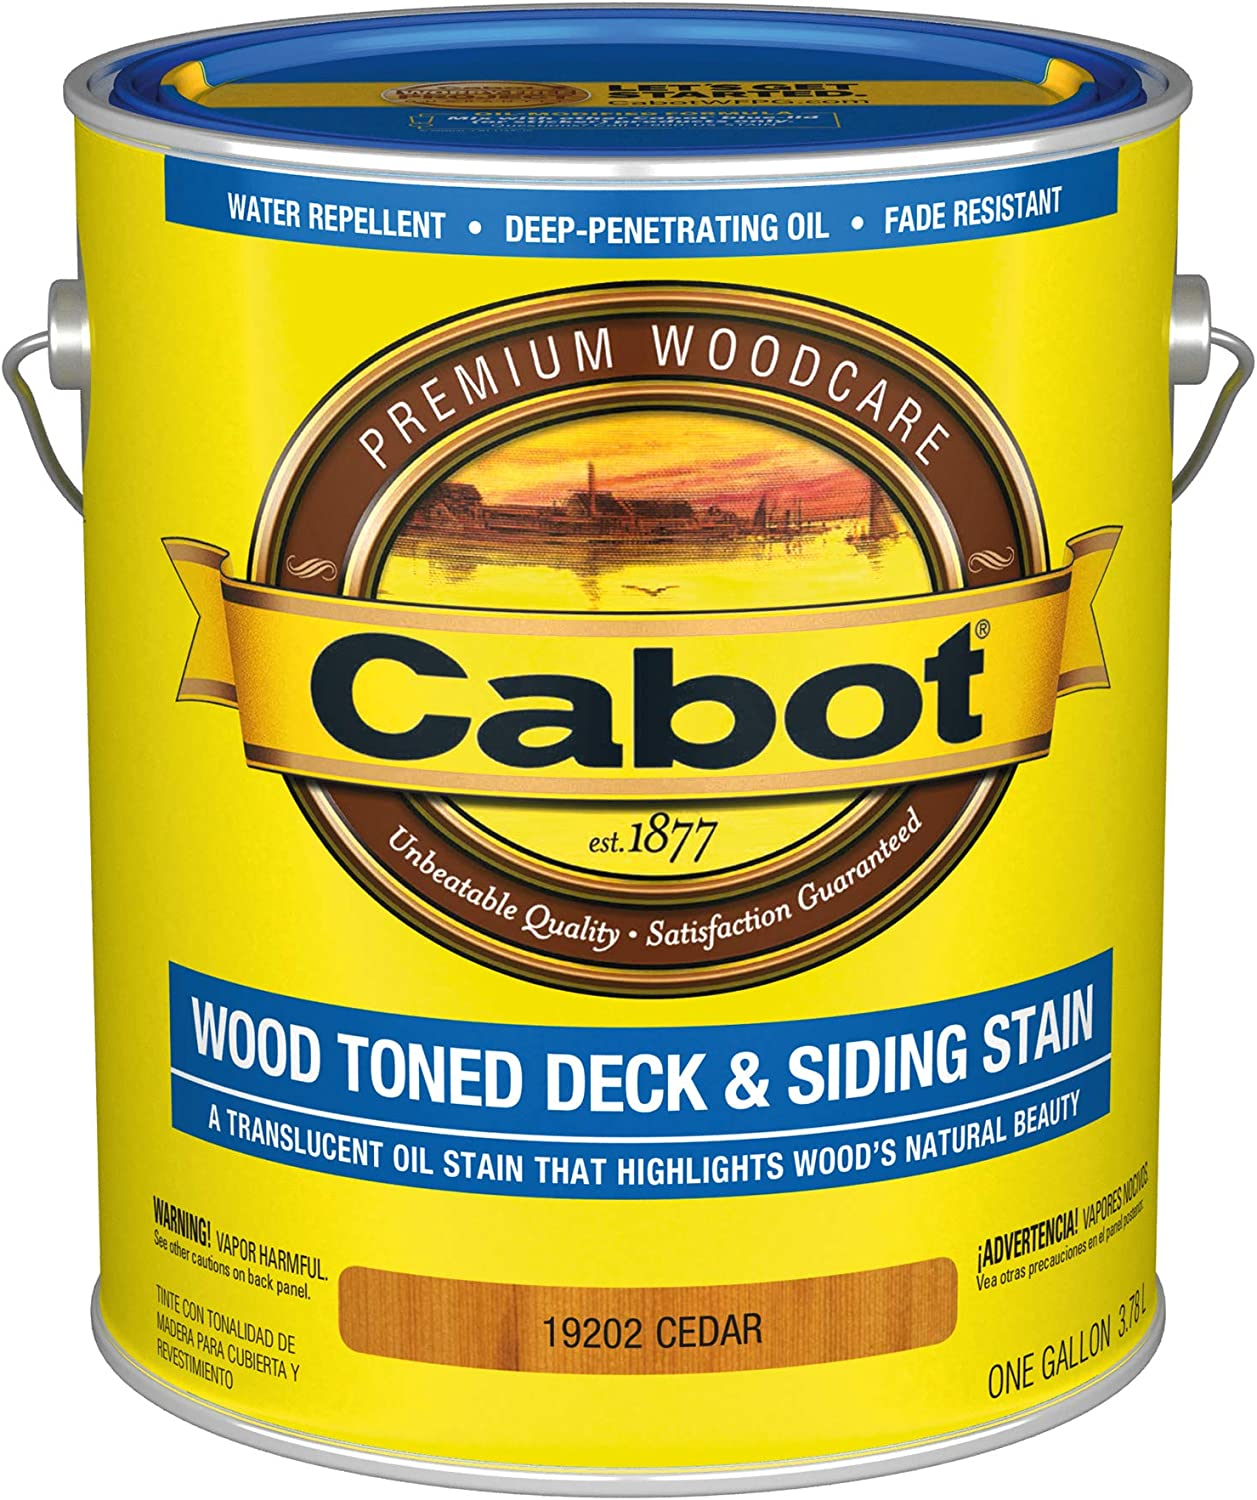 Cabot 140.0019202.007 Wood Toned Deck & Siding Low VOC Exterior Stain, Gallon, Cedar